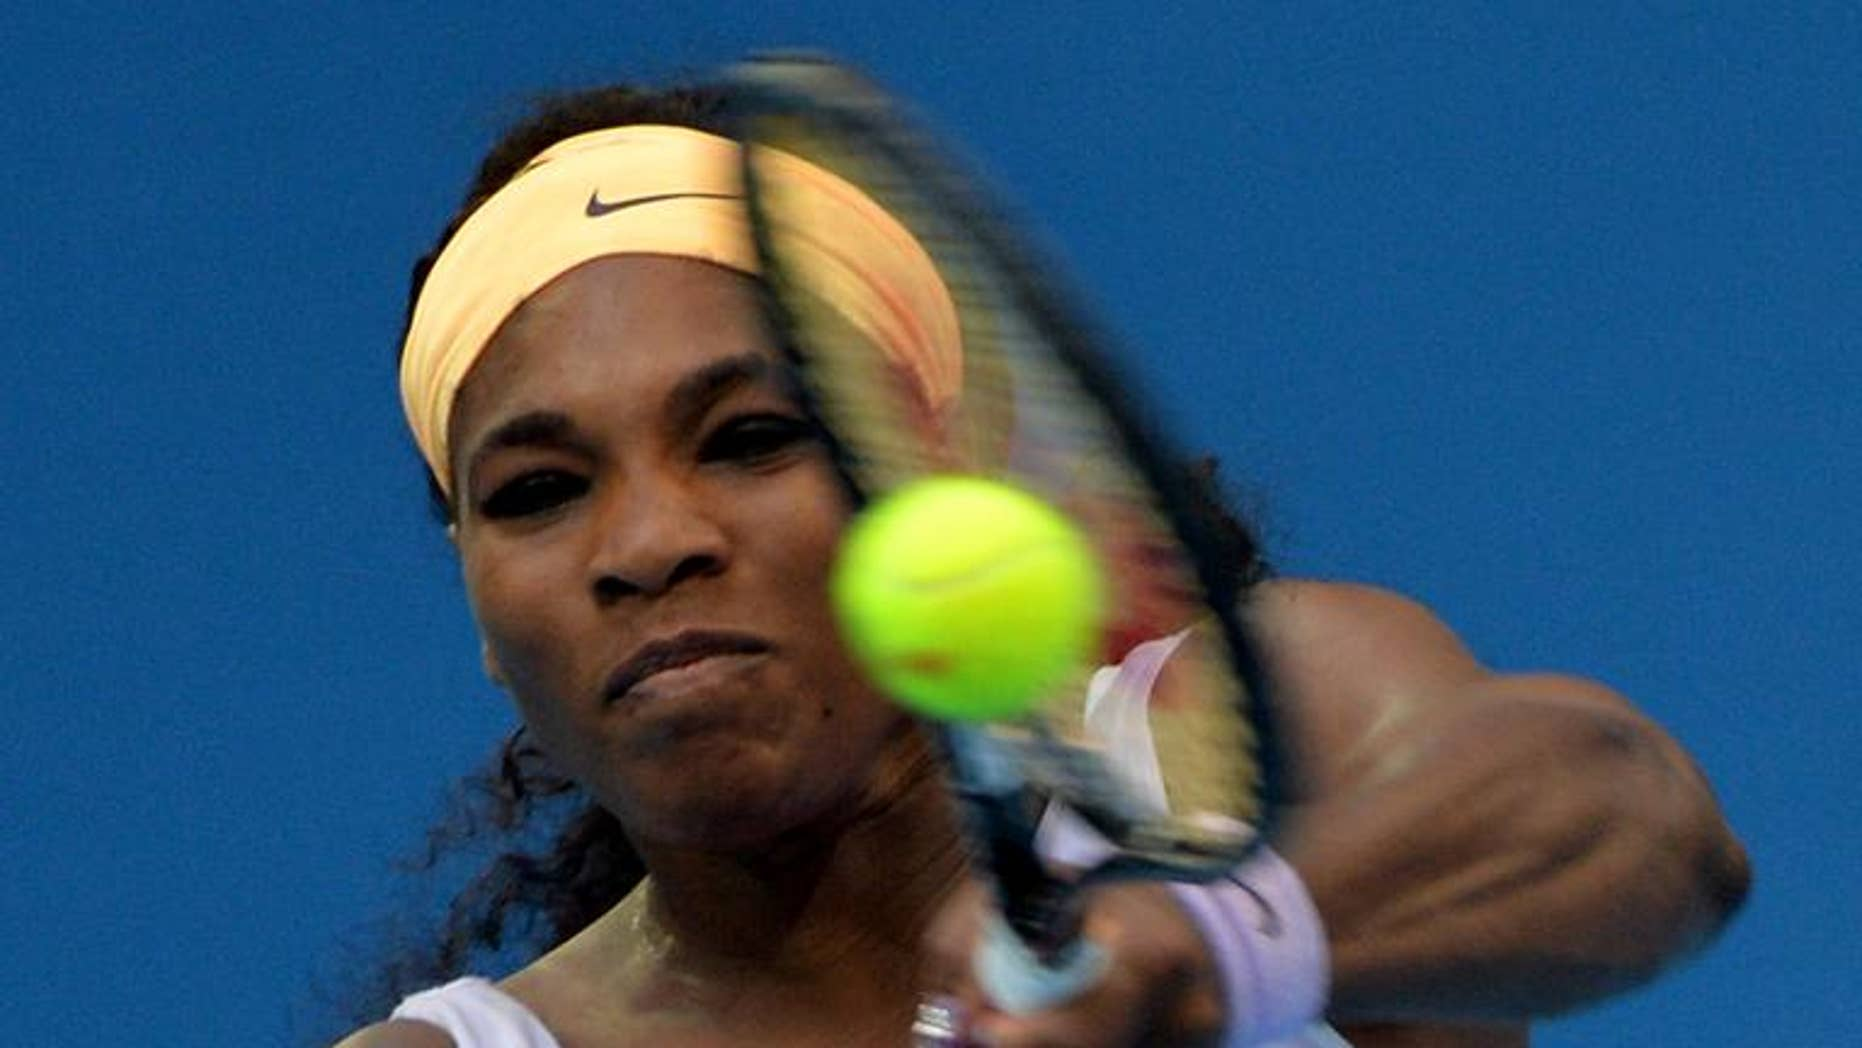 Serena Williams plays a shot during her match against Francesca Schiavone at the China Open in Beijing on October 1, 2013